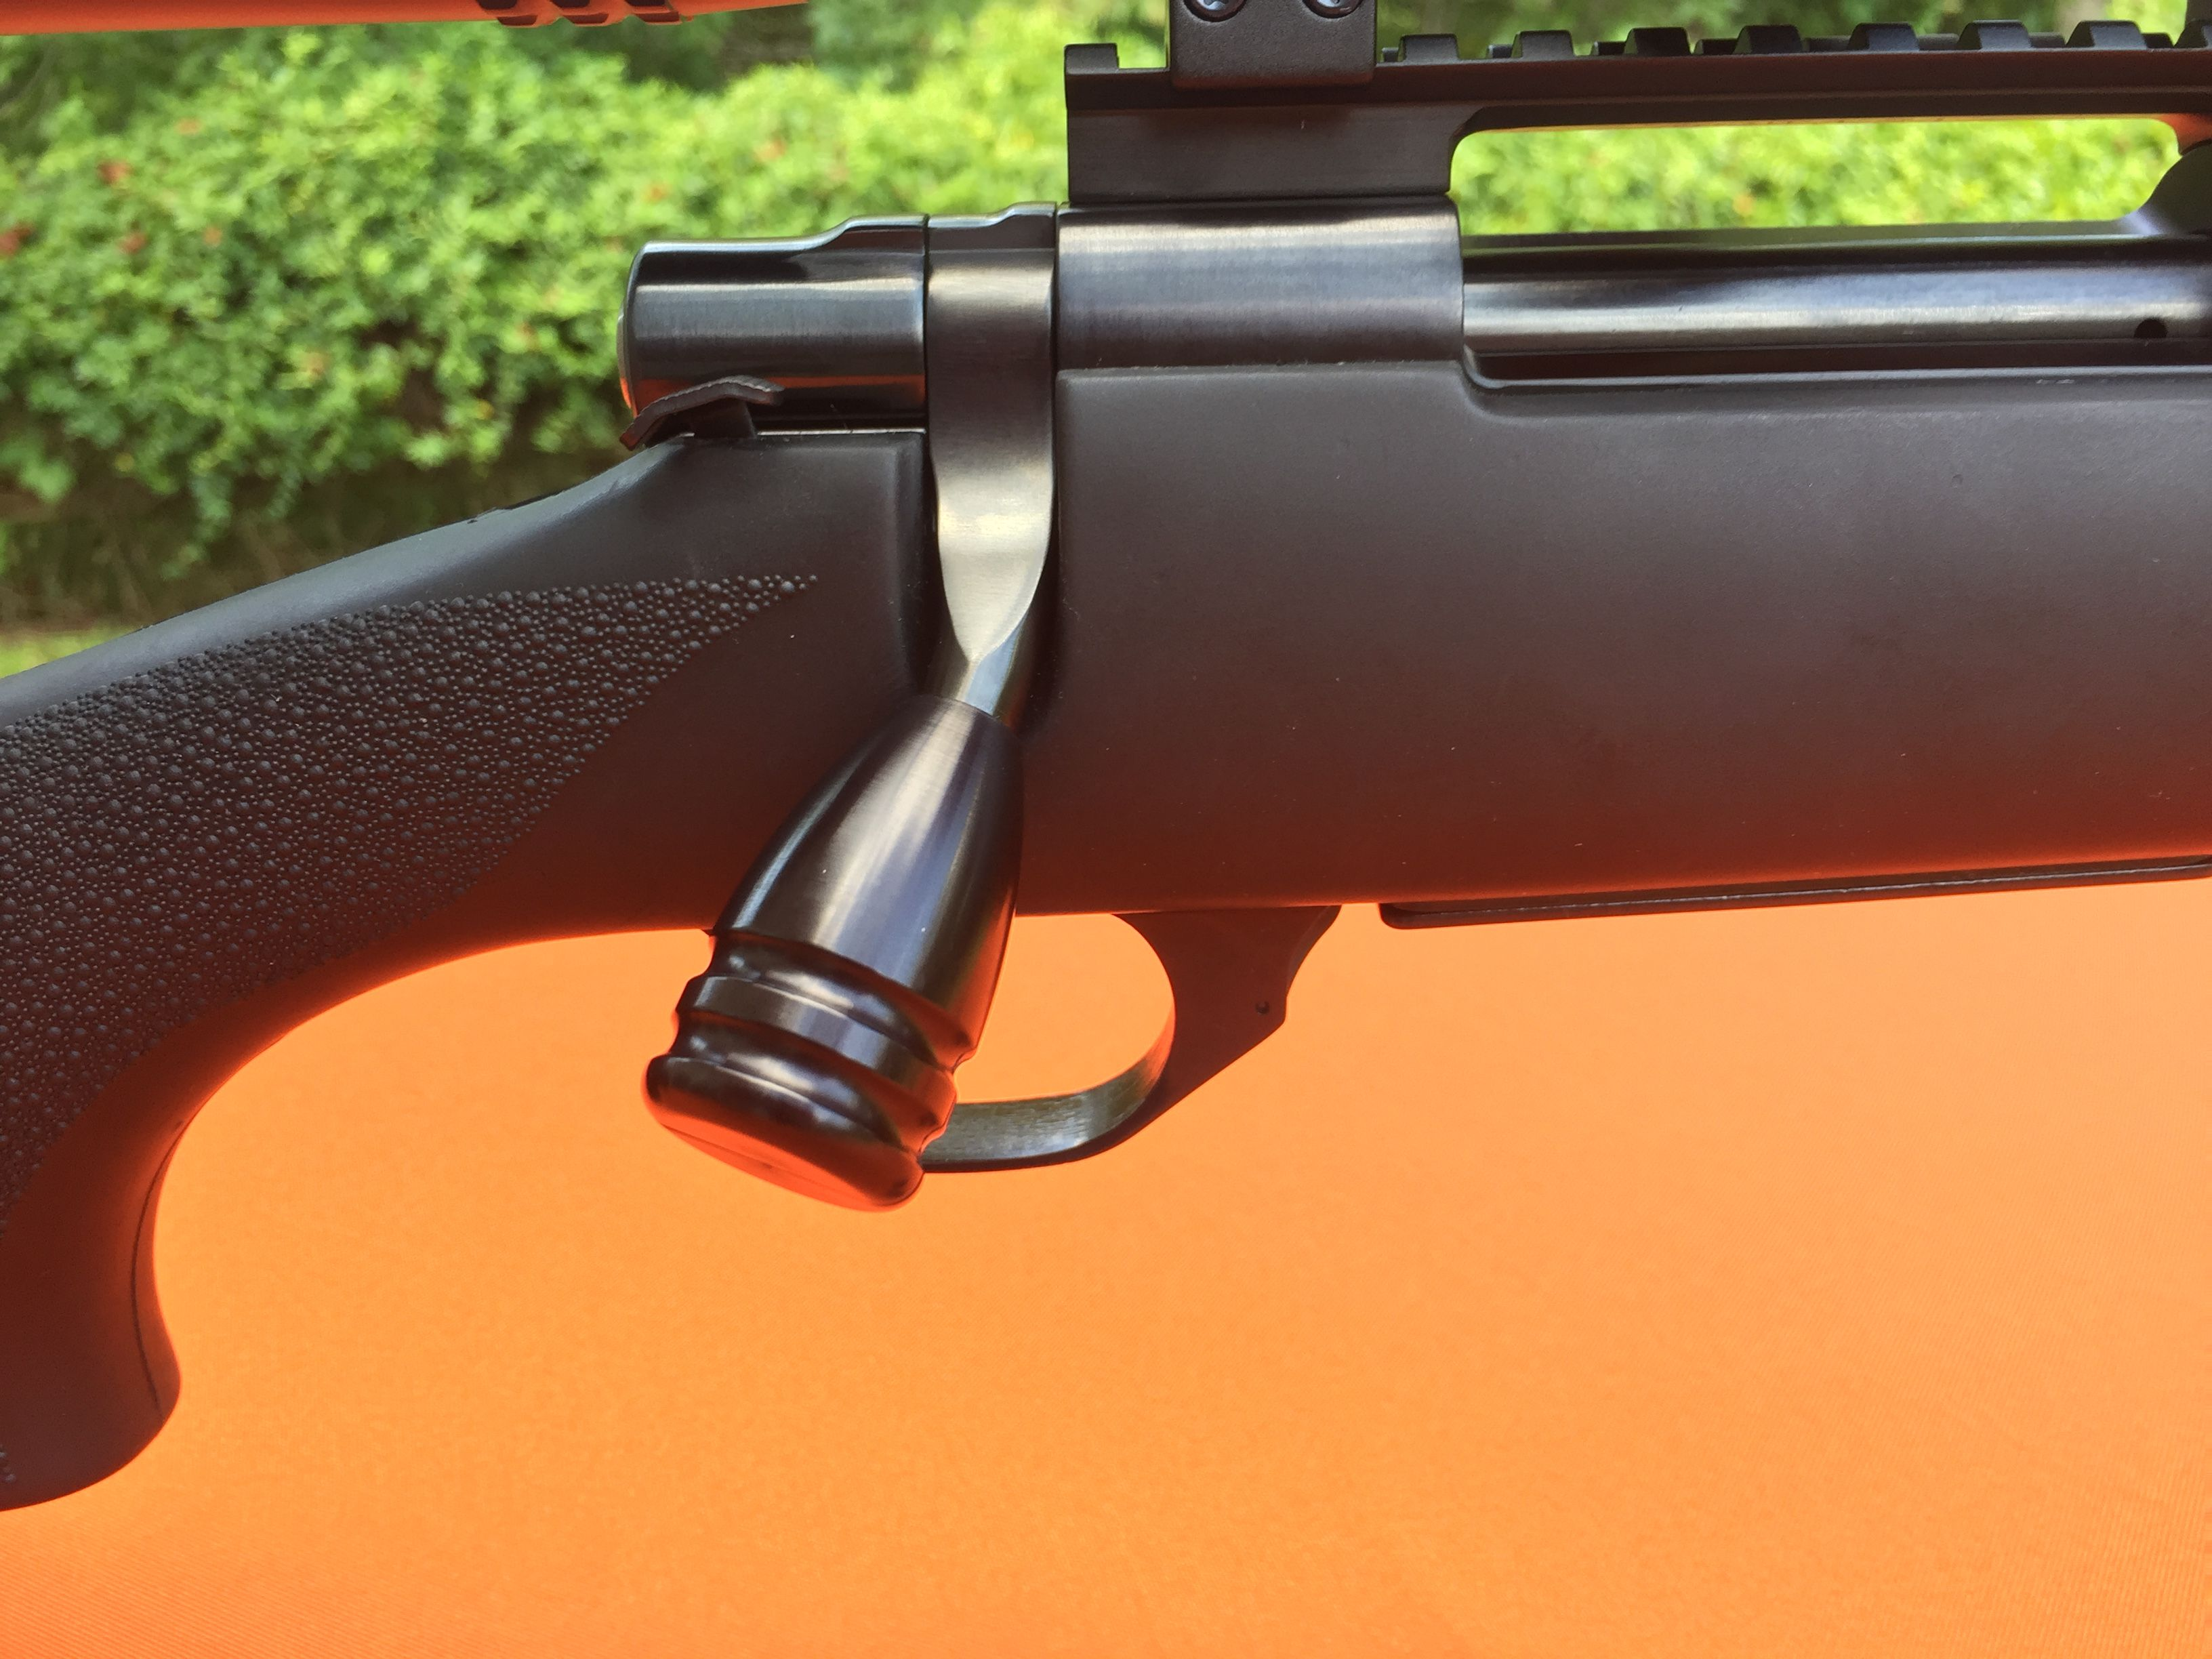 Howa 1500 with a Bolt On Quick Load Knob  Why cut, just Bolt